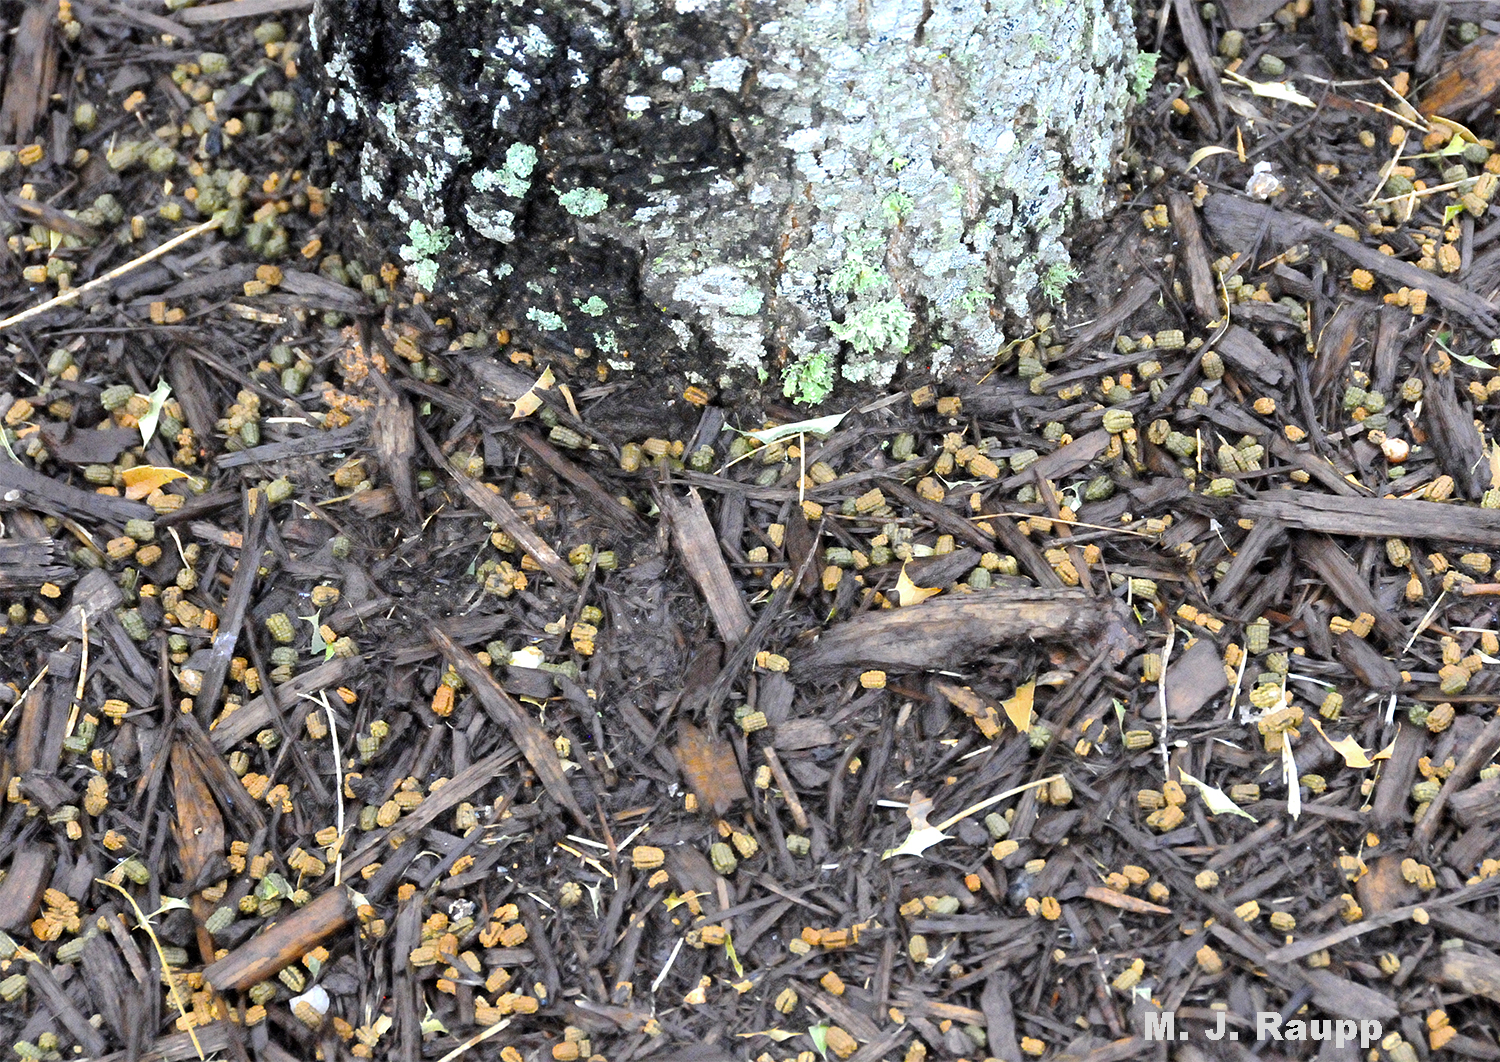 Telltale pellets of frass (insect poop, a technical term) beneath a tree can mark the presence of caterpillars feeding above.